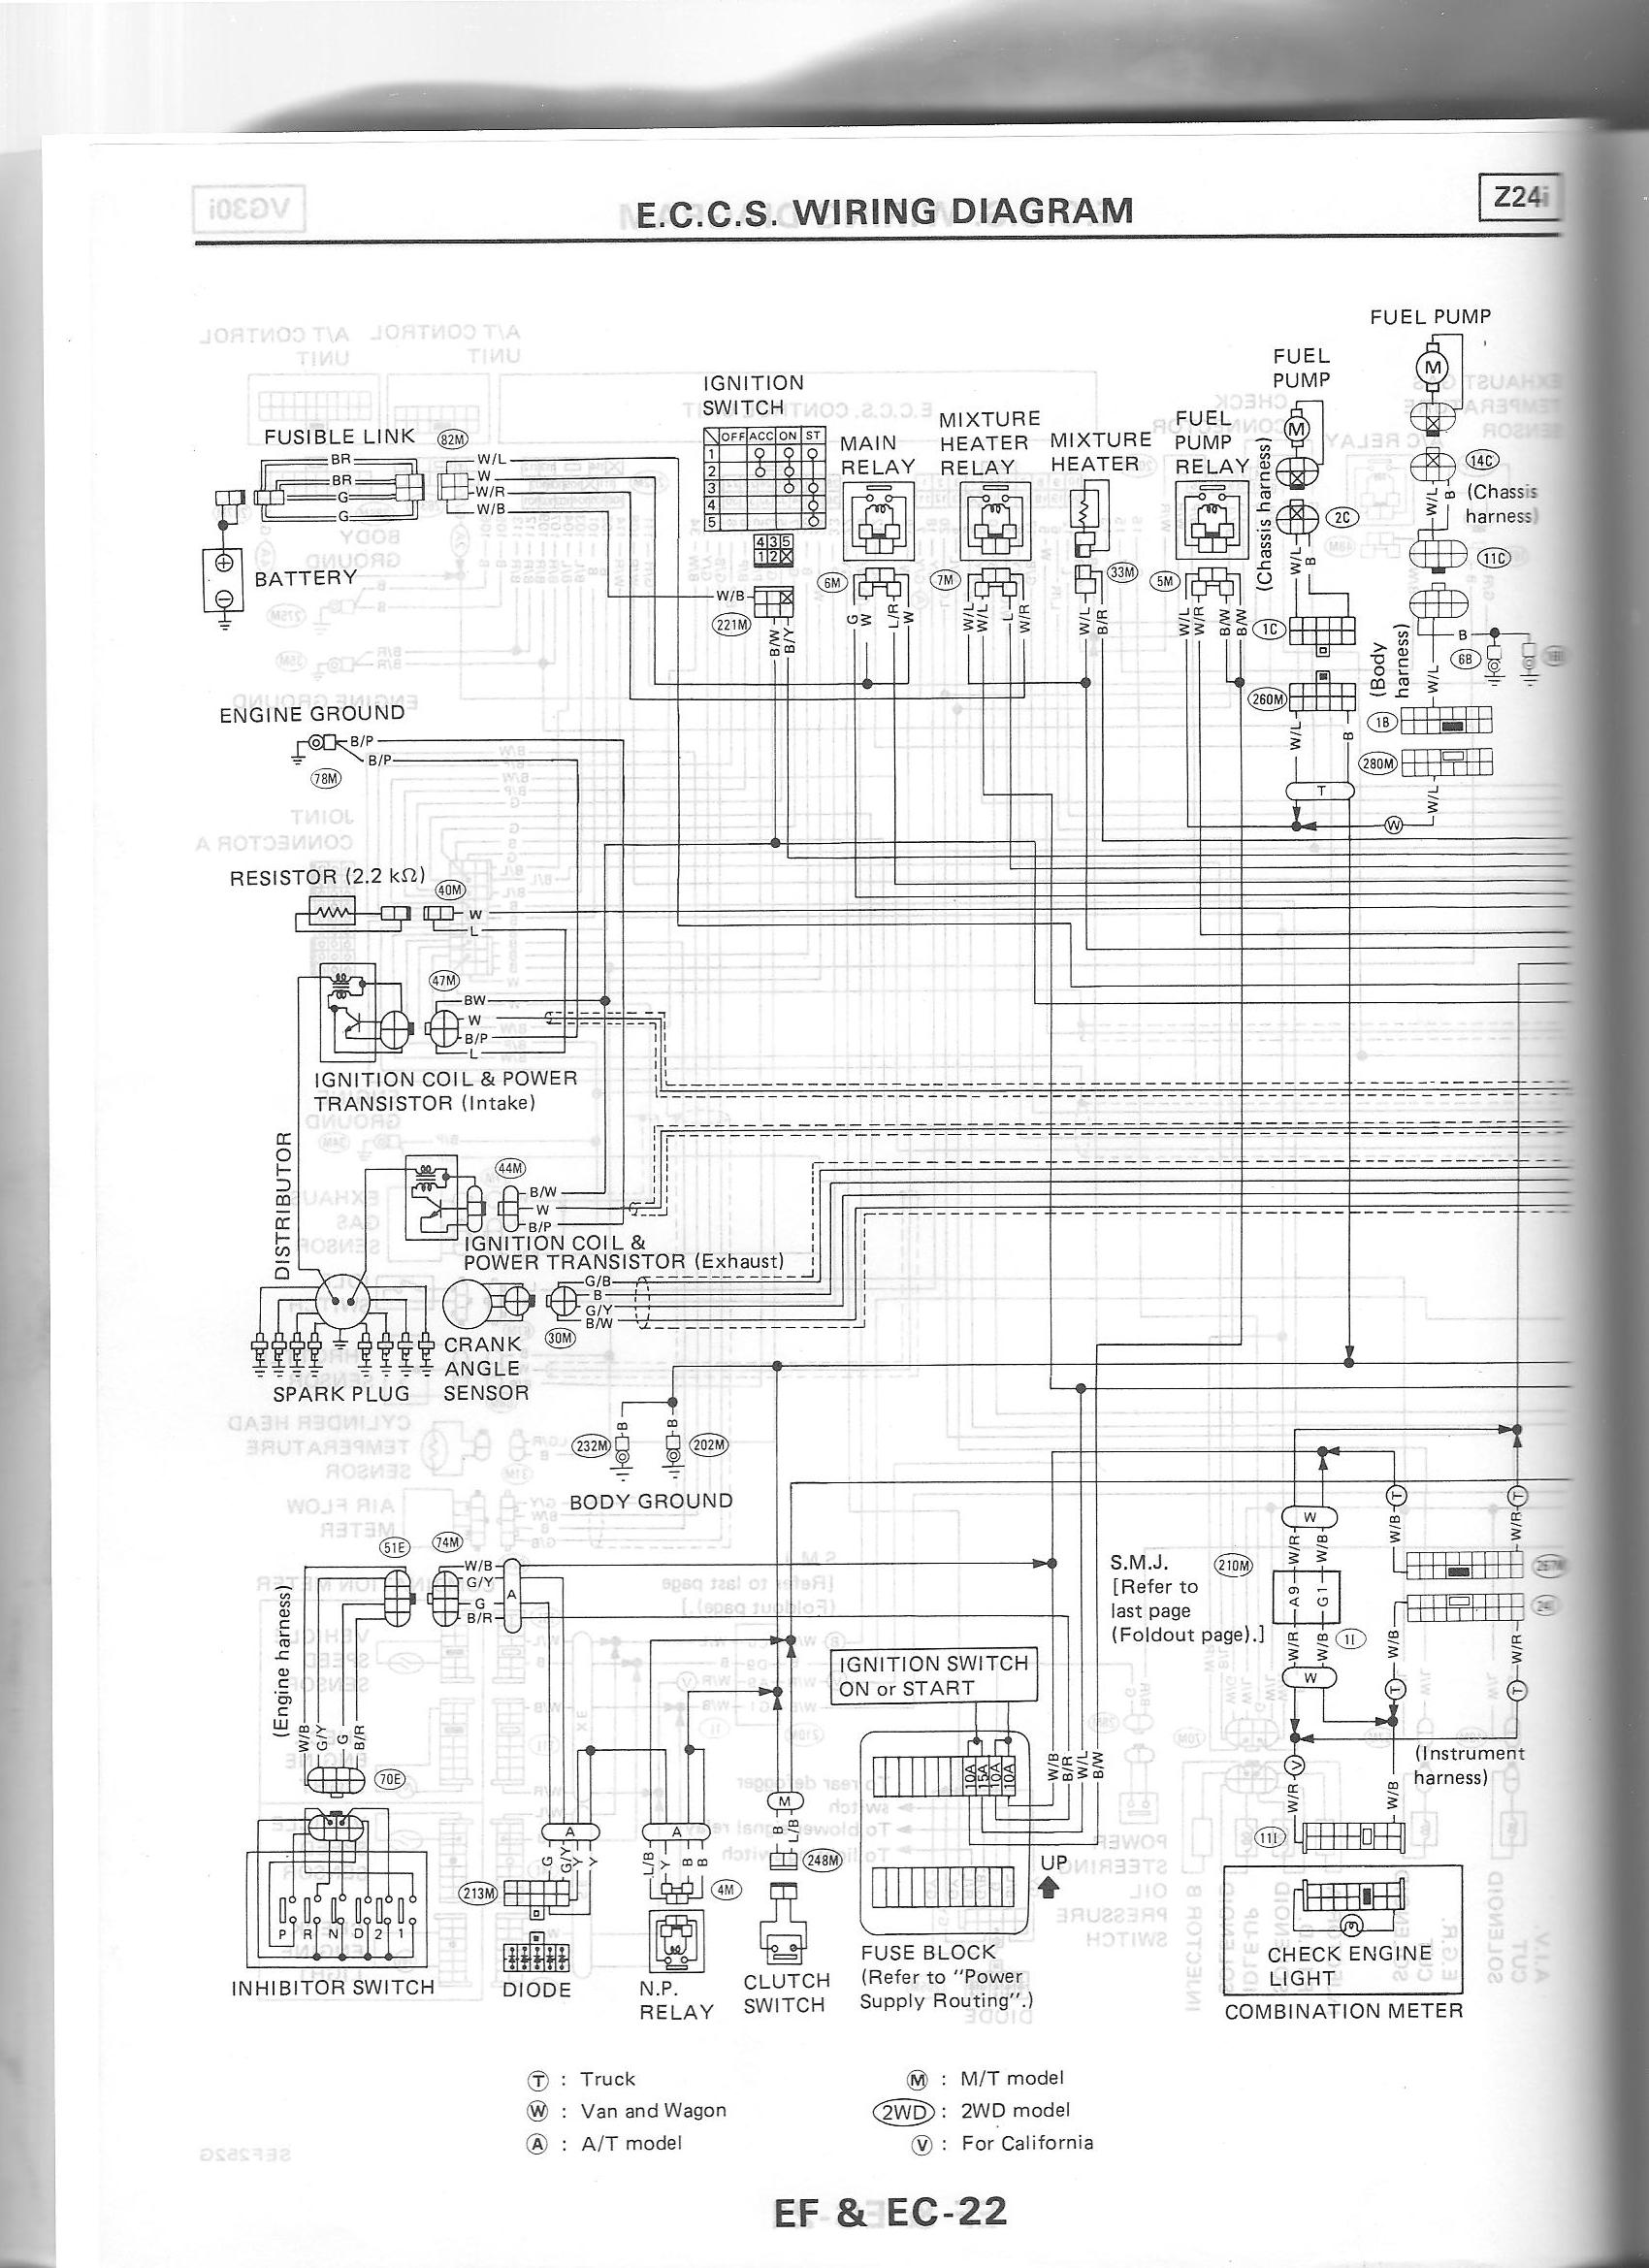 wiring1_88 nissan nut Wiring Harness Diagram at bayanpartner.co